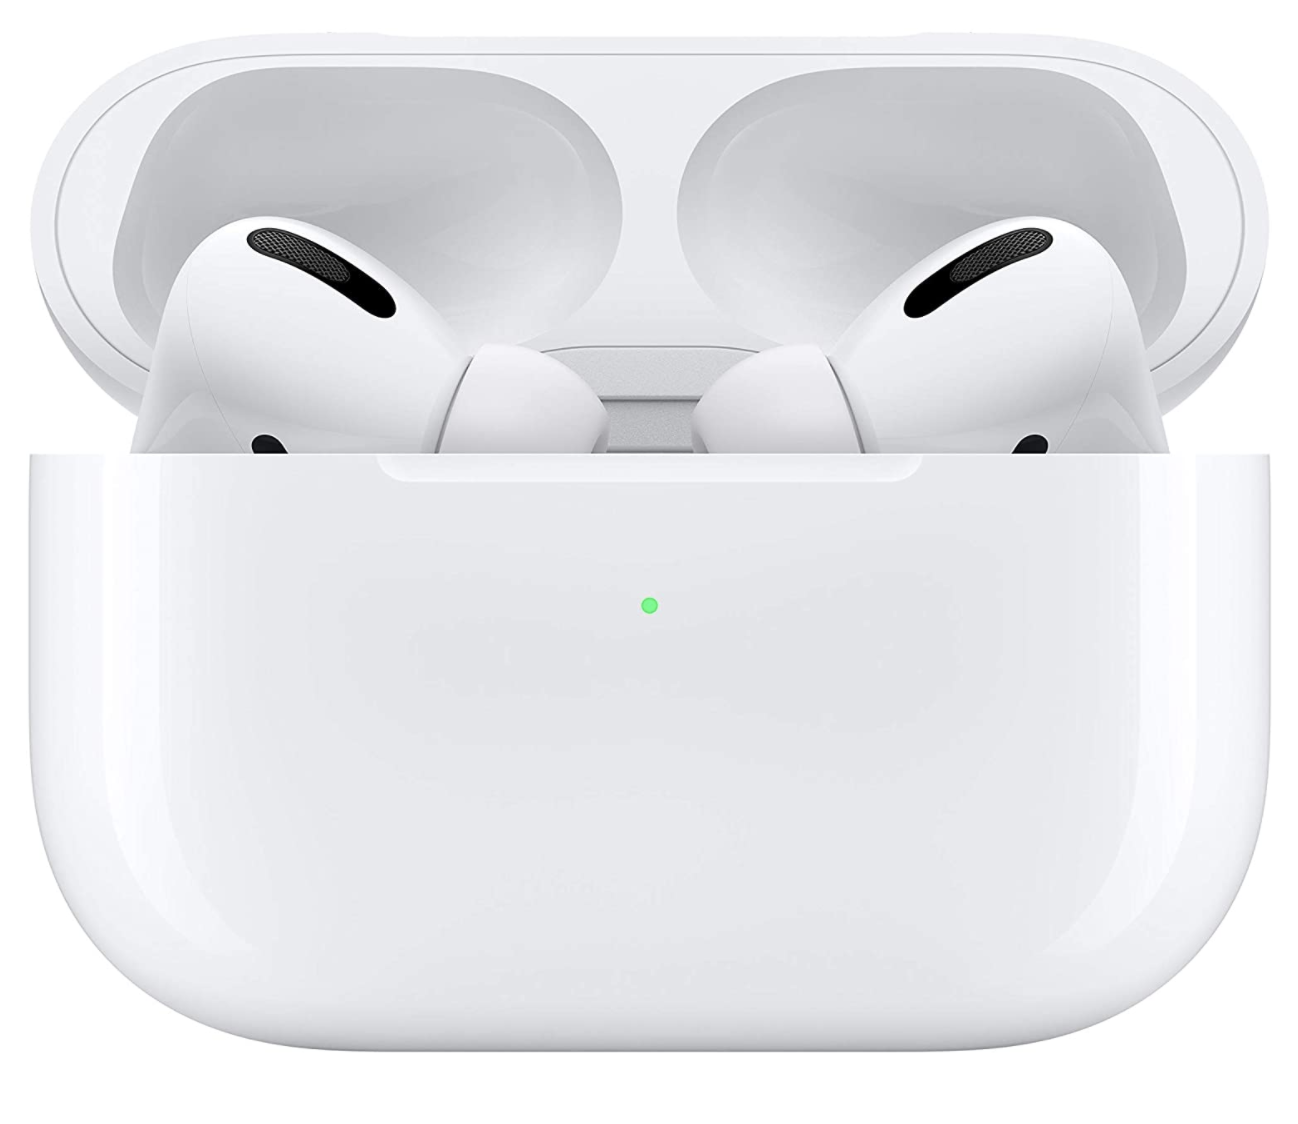 Apple Airpods Pro In 2020 Airpods Pro Noise Cancelling Wireless Earbuds